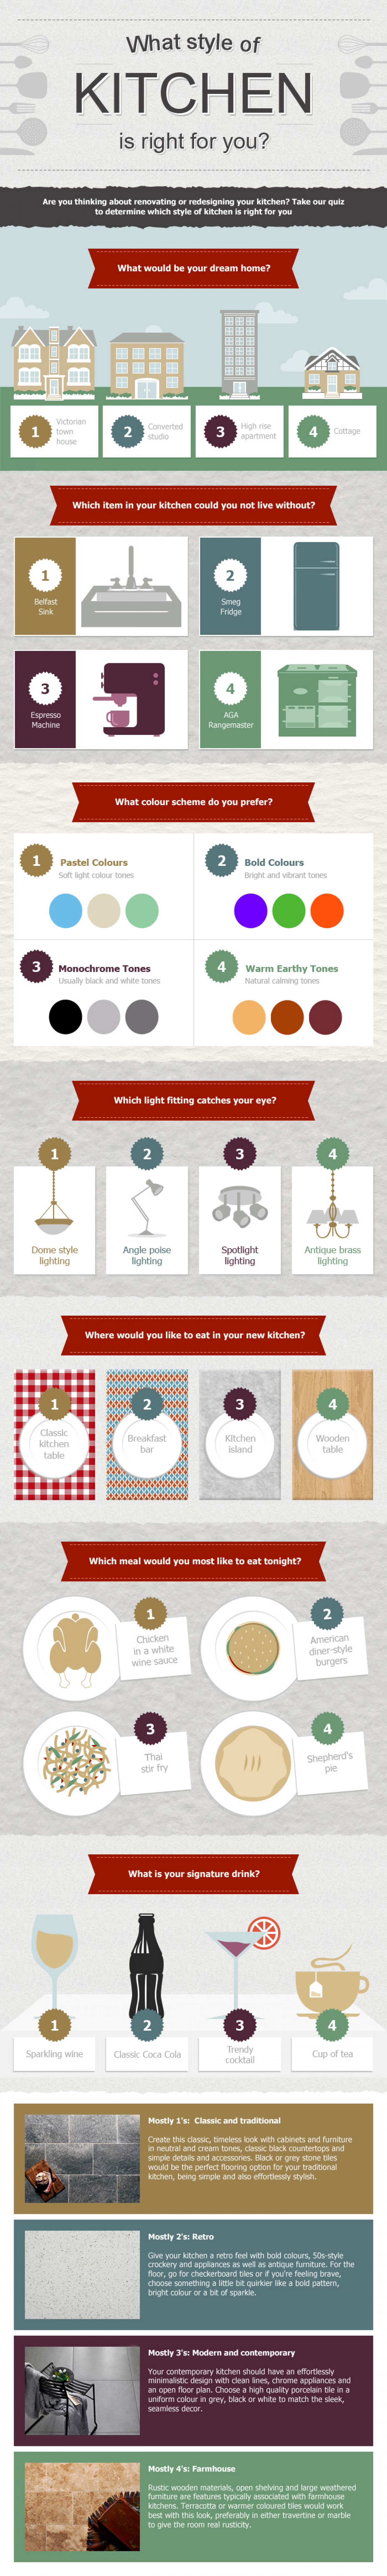 Which Style of Kitchen is Right For You? Infographic